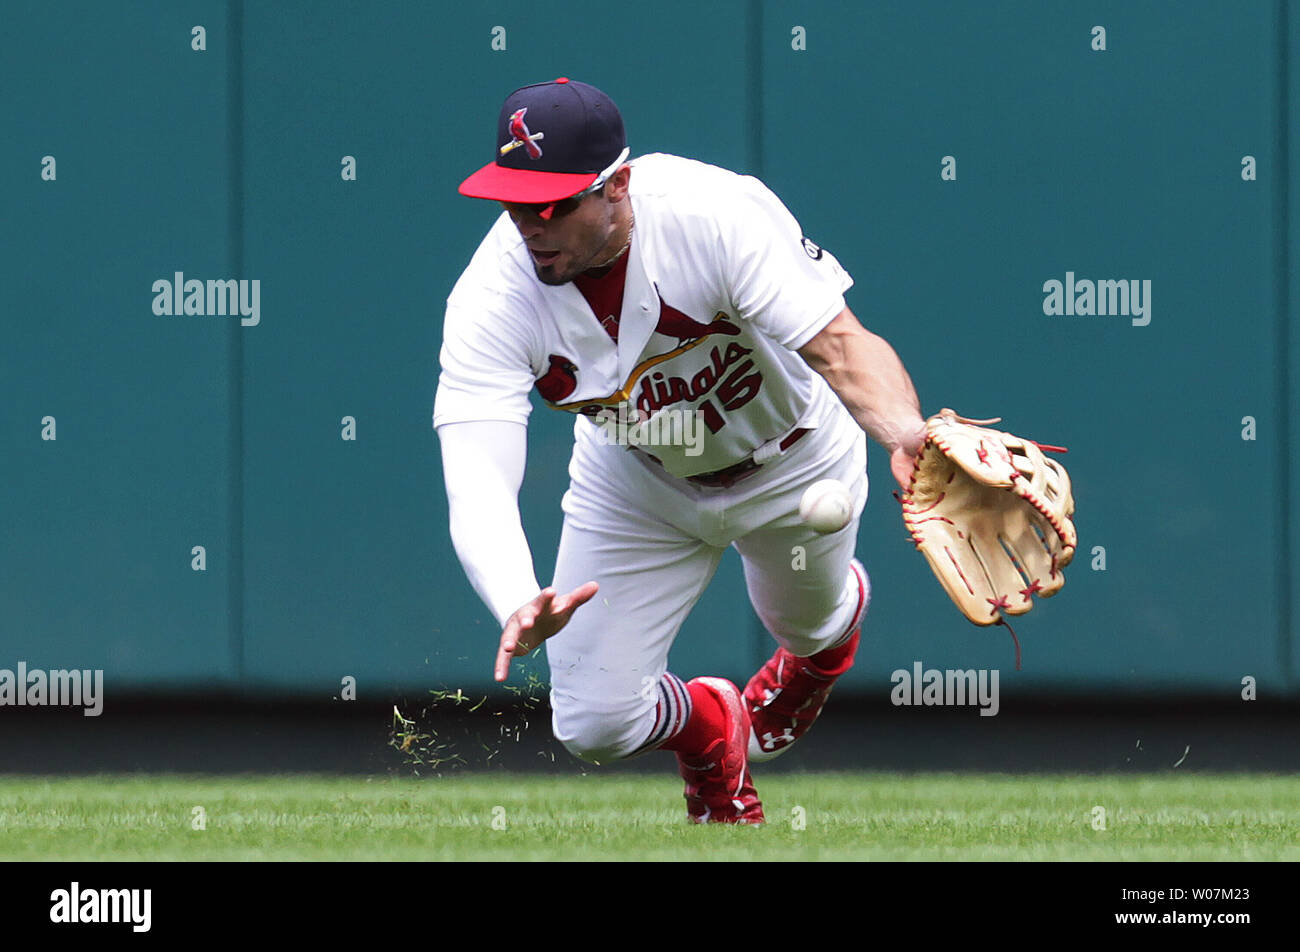 St. Louis Cardinals Randal Grichuk makes a diving attempt on a ball hit by Atlanta Braves Freddie Freeman in the third inning at Busch Stadium in St. Louis on July 26, 2015. The hit was good for a single.   Photo by Bill Greenblatt/UPI Stock Photo